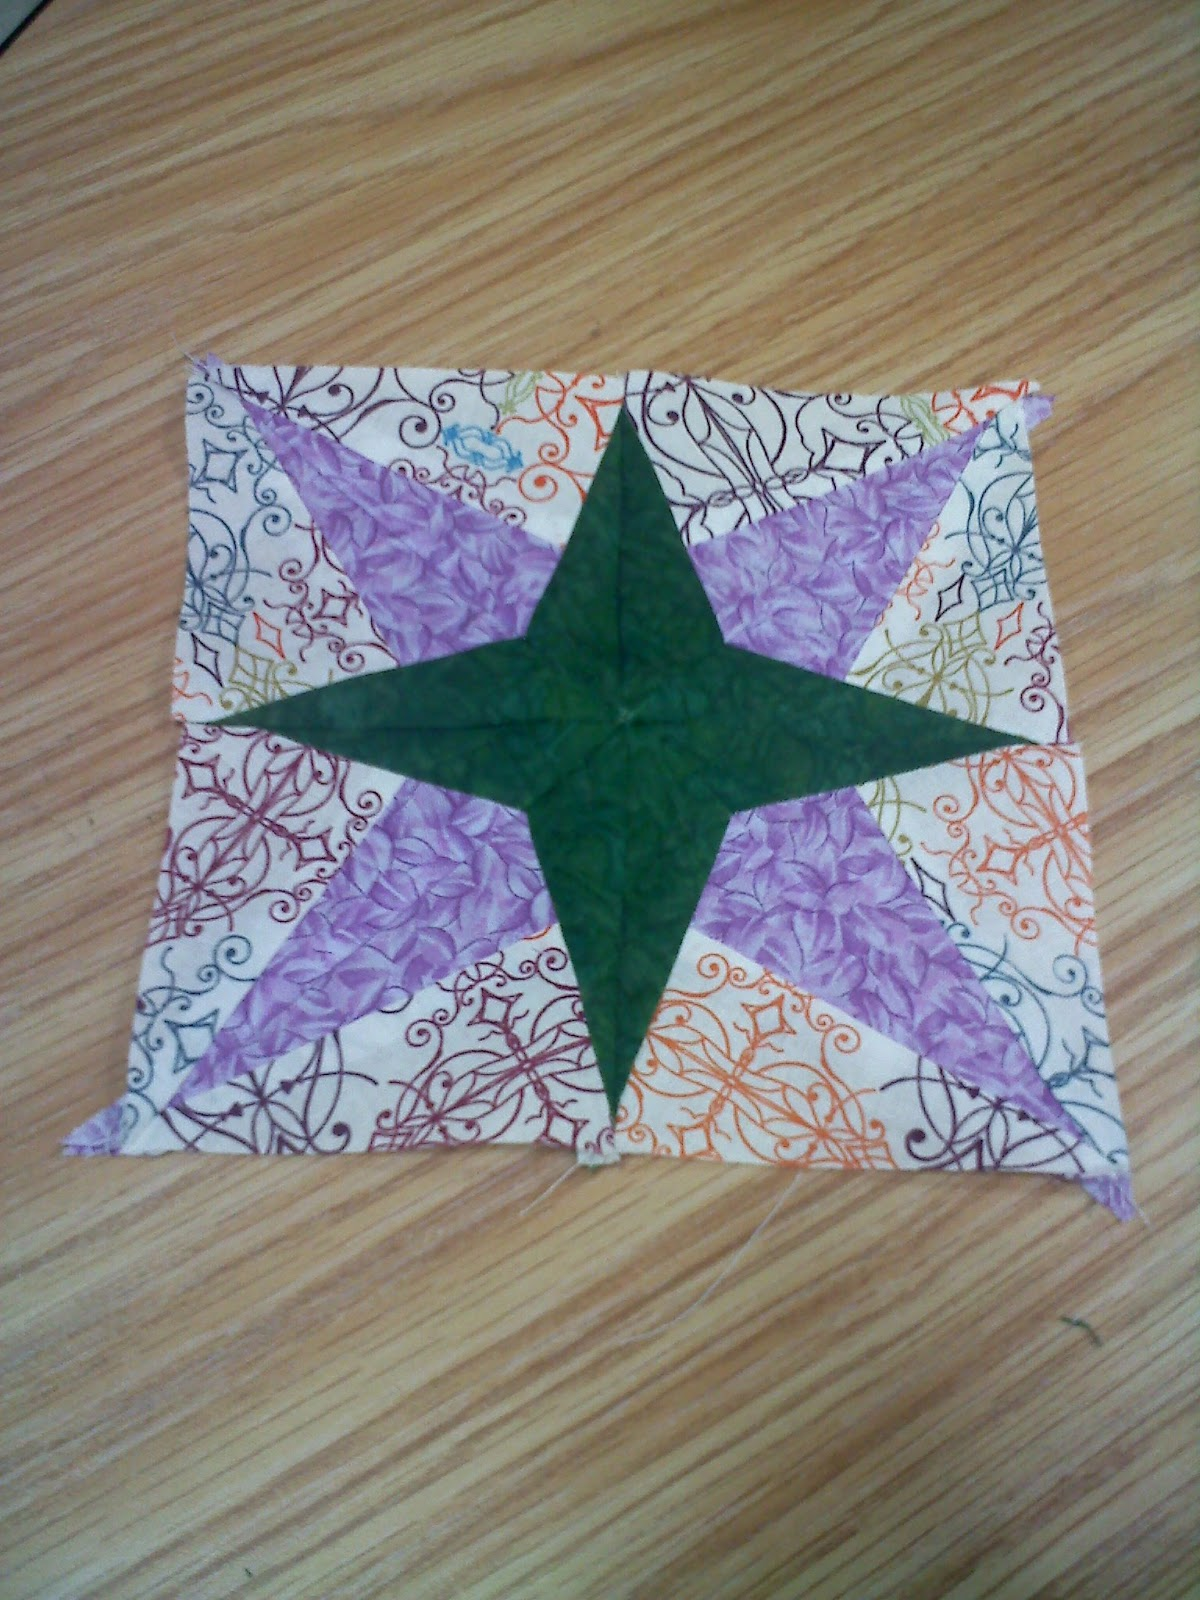 Quilt Paper Piecing Patterns For Beginners : Quilt Addicts Anonymous: Paper piecing is great for beginner quilters